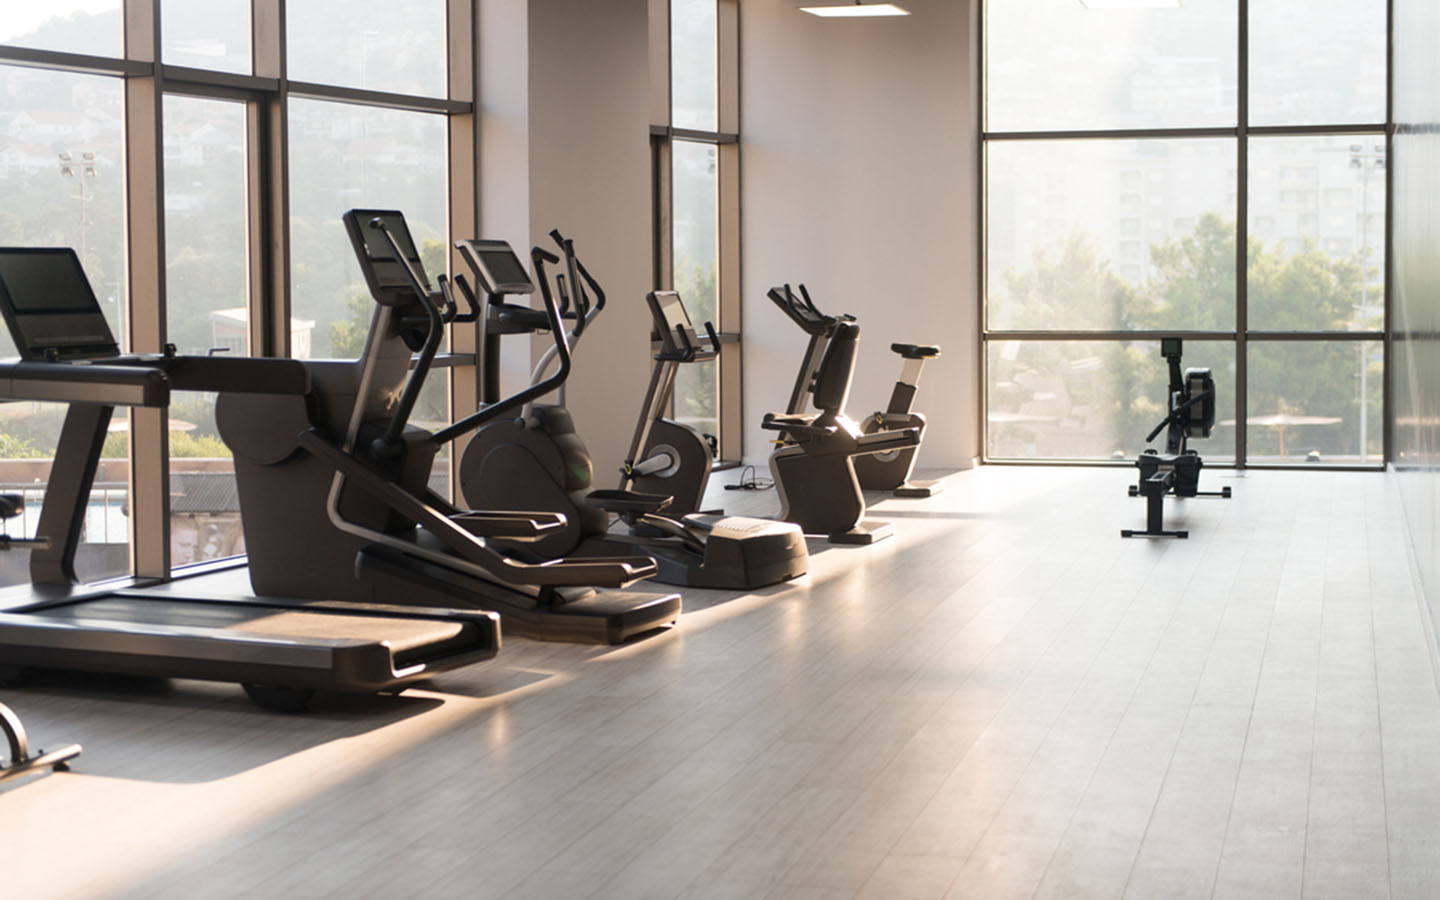 Inside of a gym with treadmills